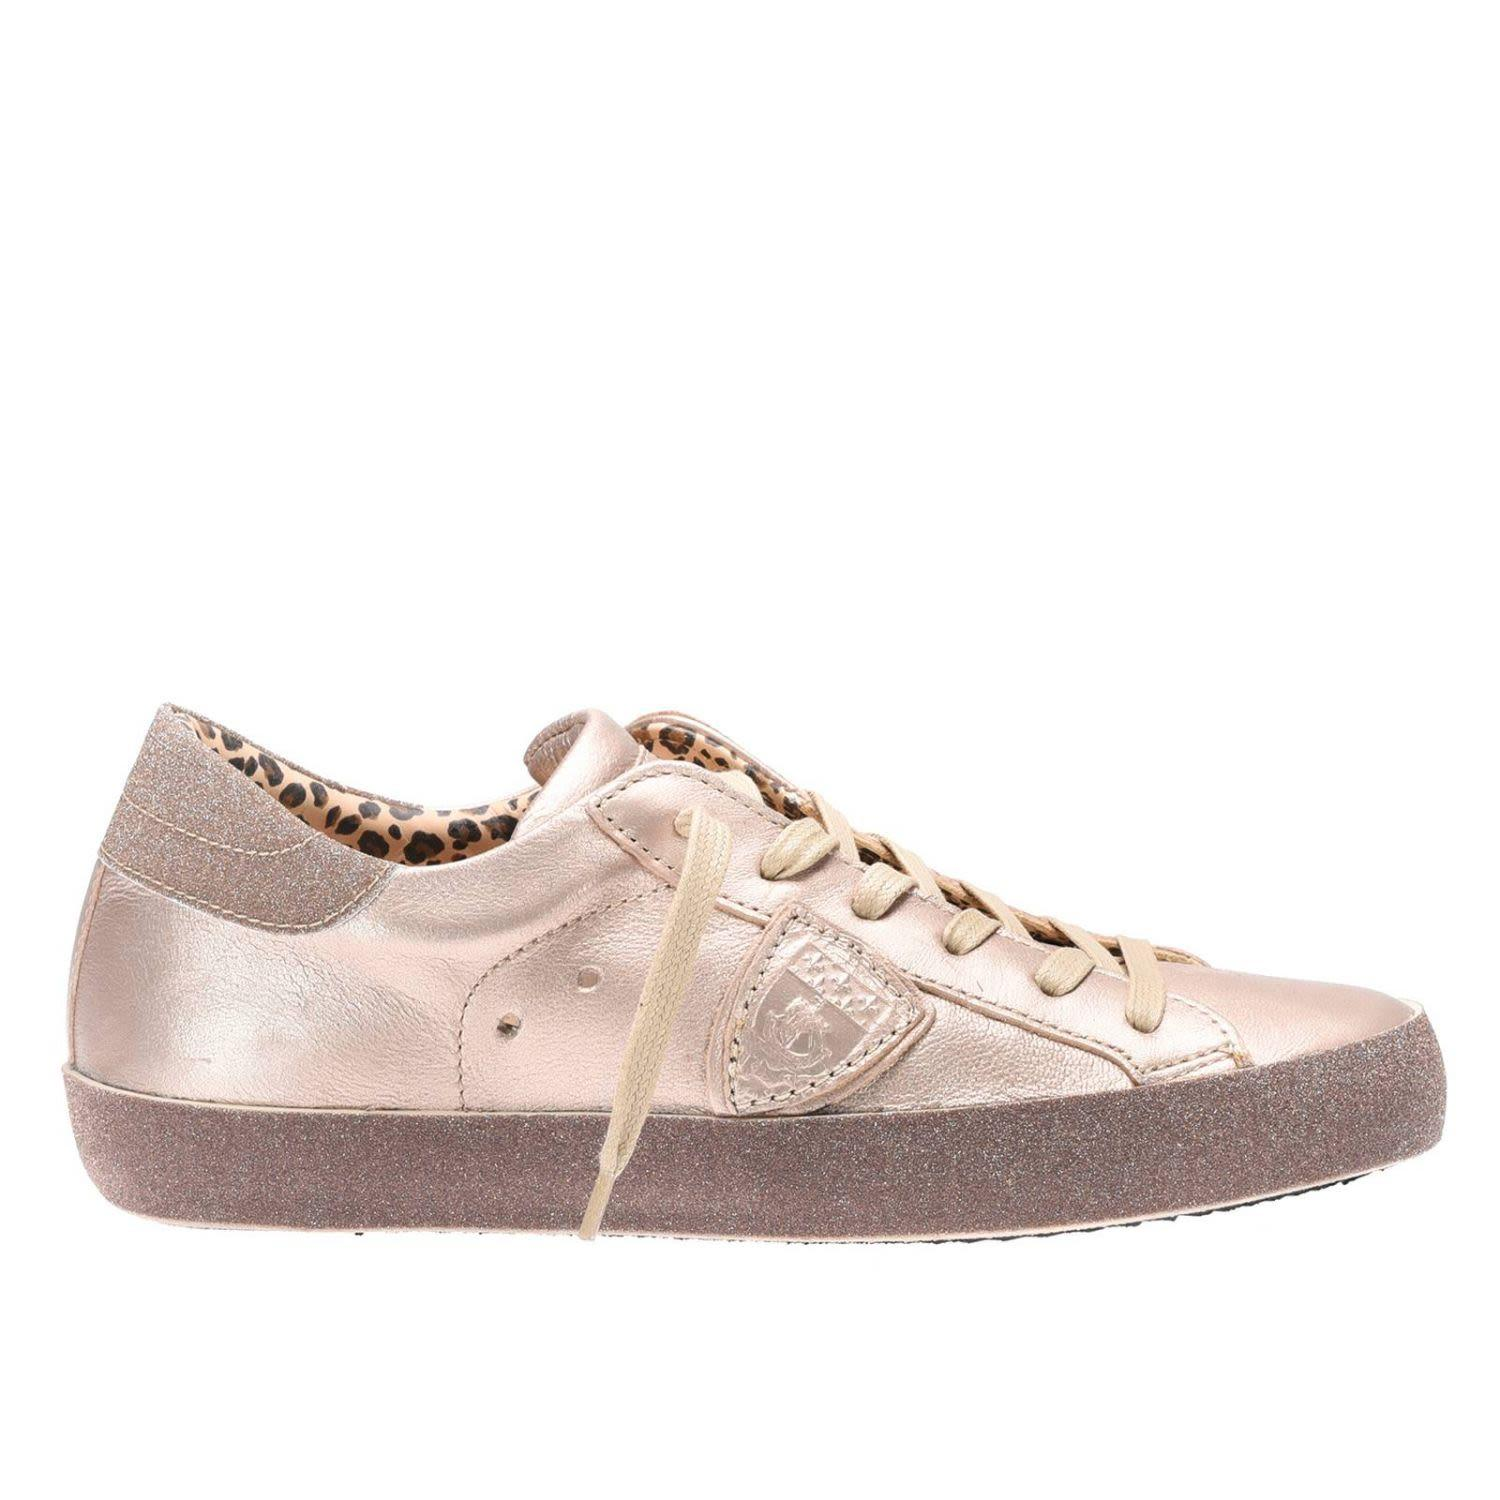 Philippe Model Sneakers Shoes Women  In Natural